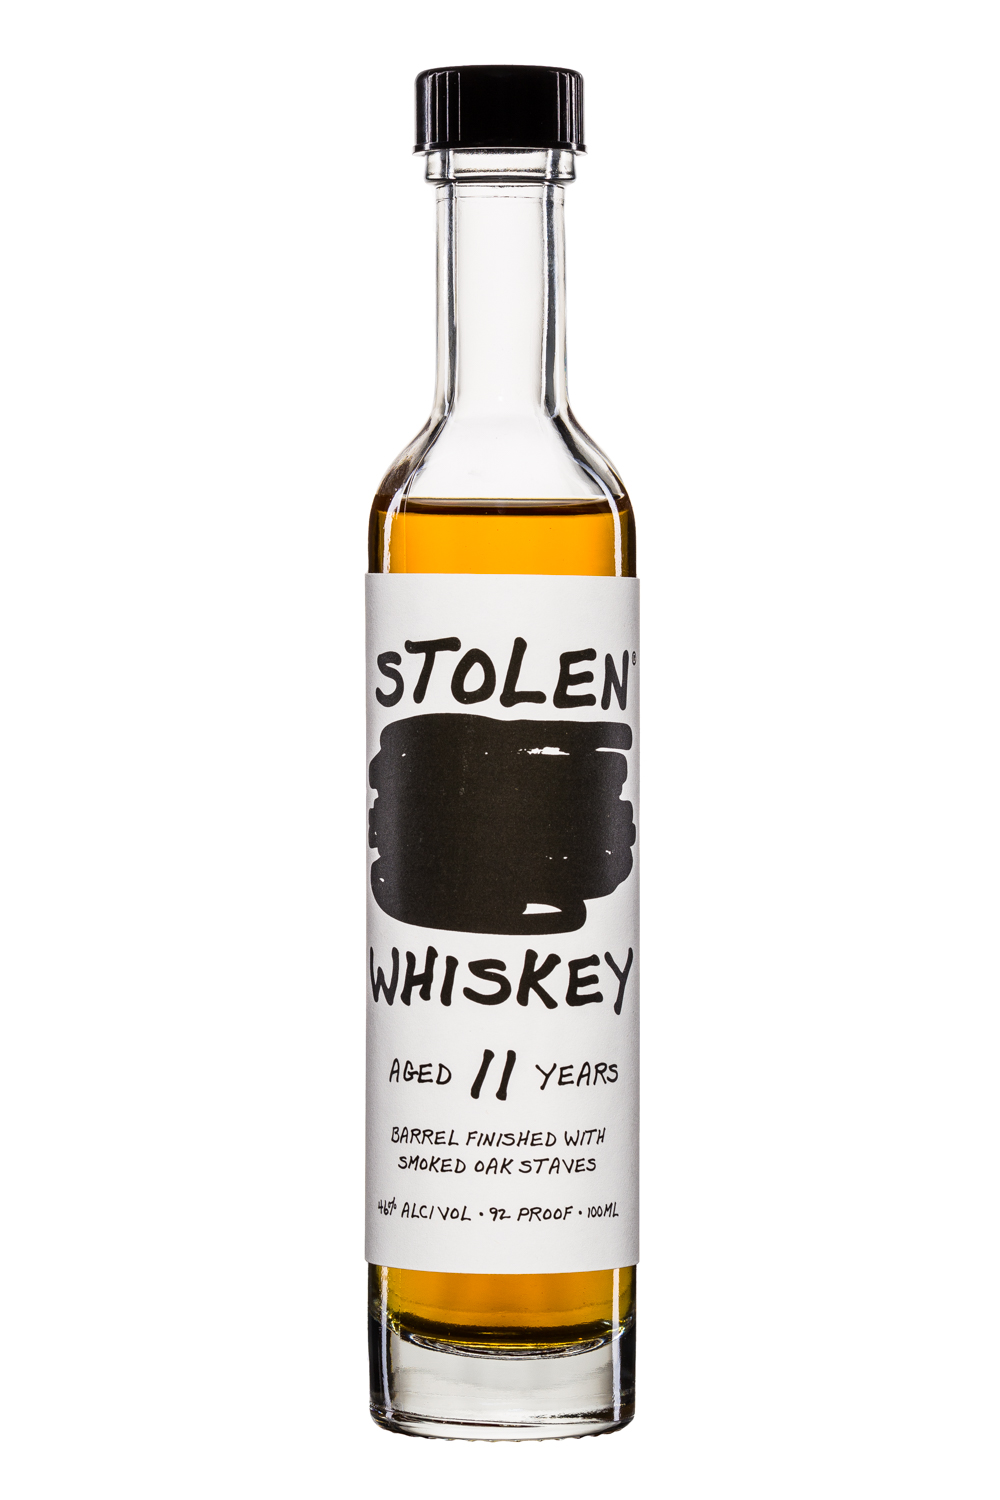 This is Stolen: StolenWhiskey-100ml